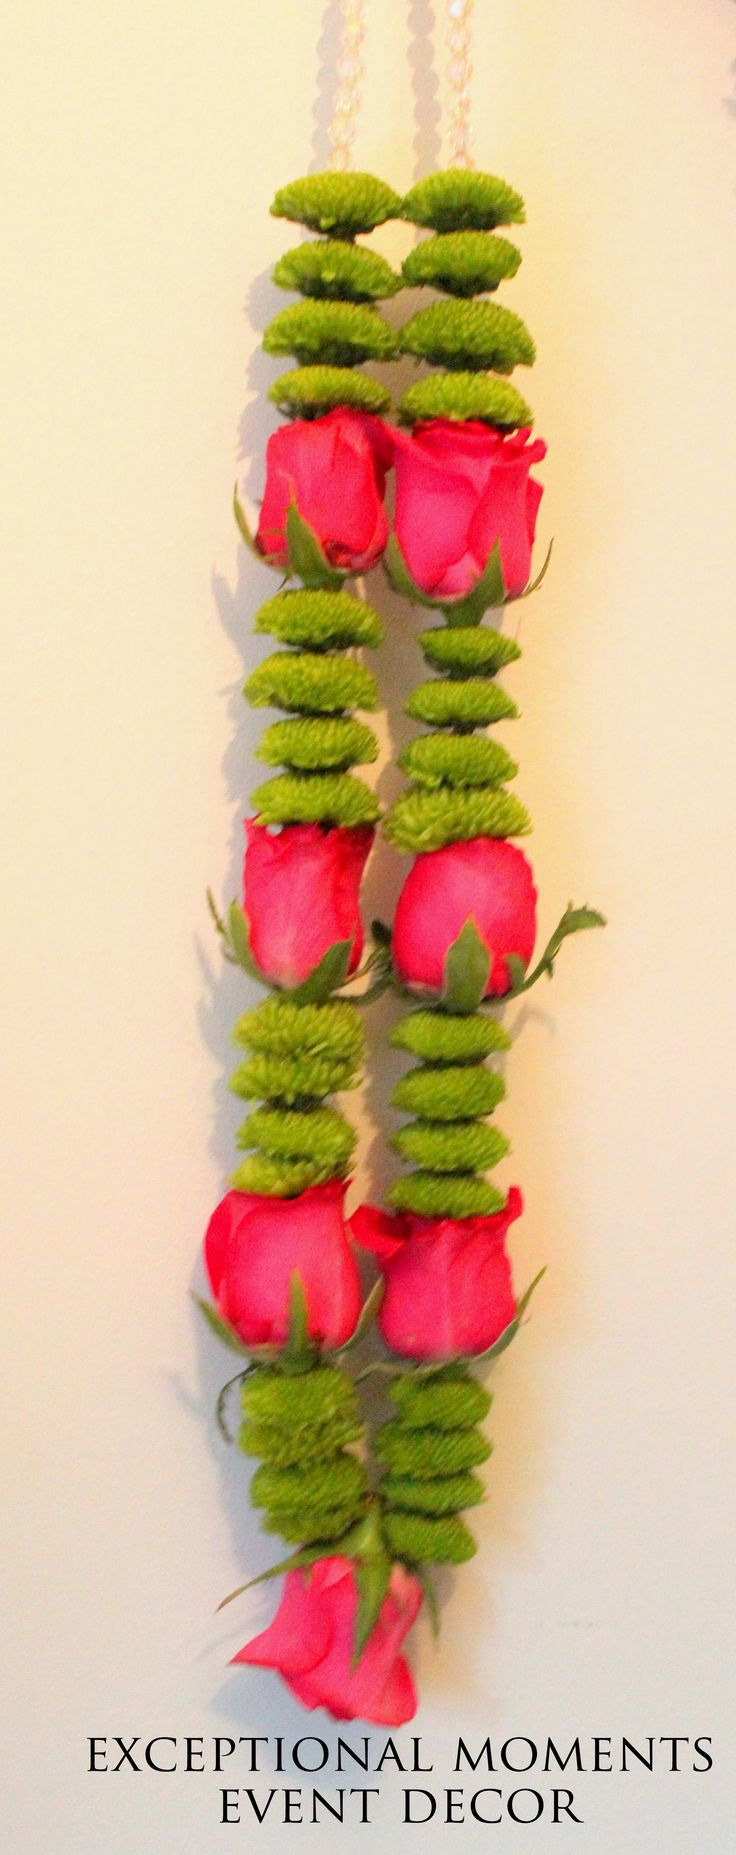 fuchsia Rose, green button chrysanthemum wedding garland